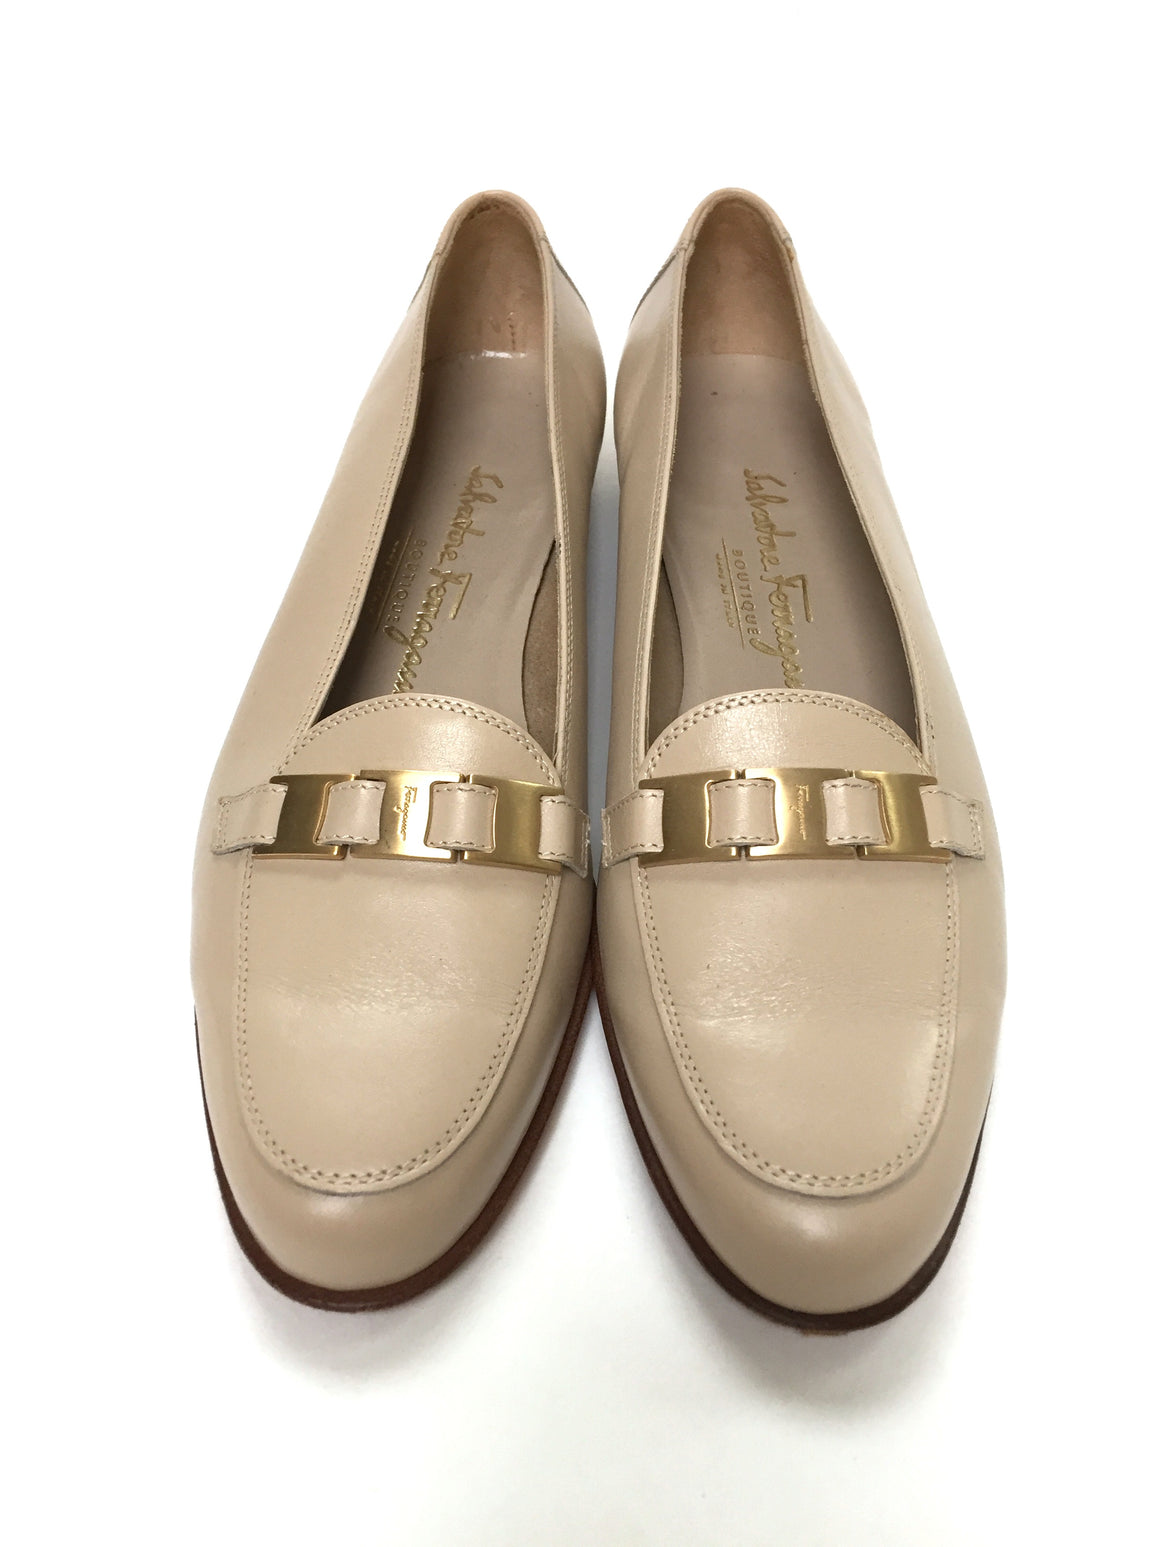 FERRAGAMO Beige Leather Gold Link Accent Flat Loafers Shoes Sz7B